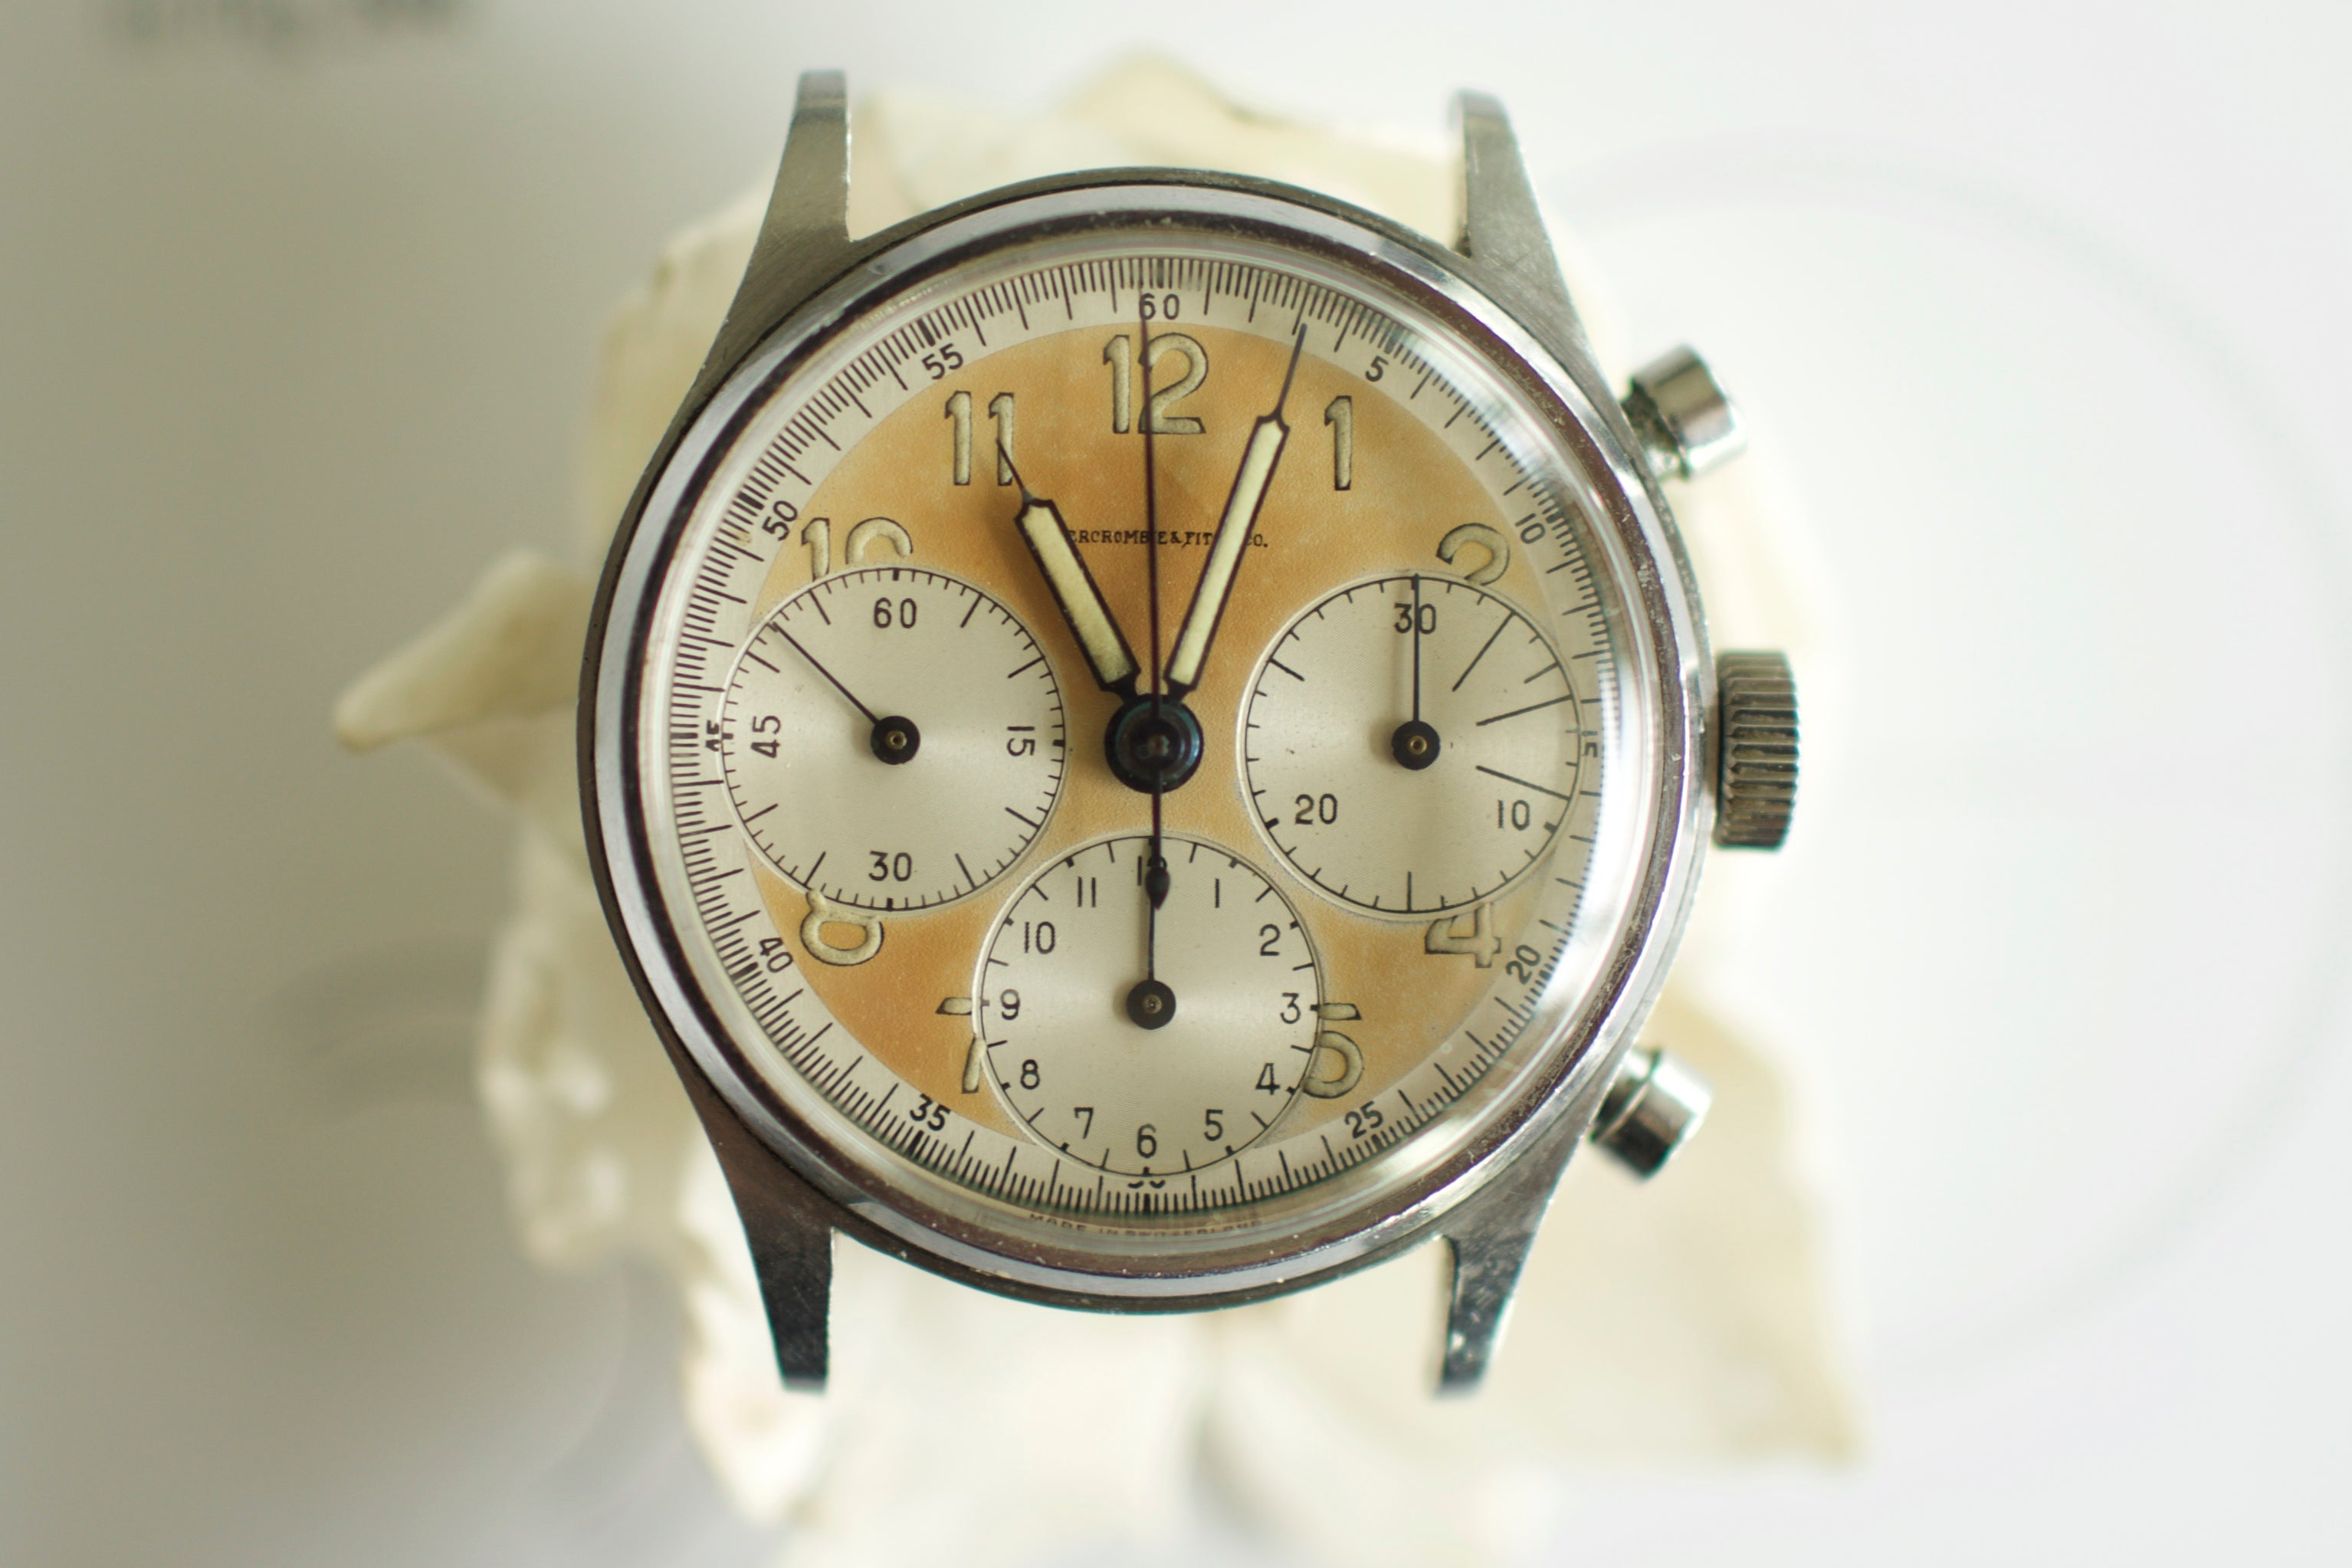 Heuer for Abercrombie & Fitch Seafarer